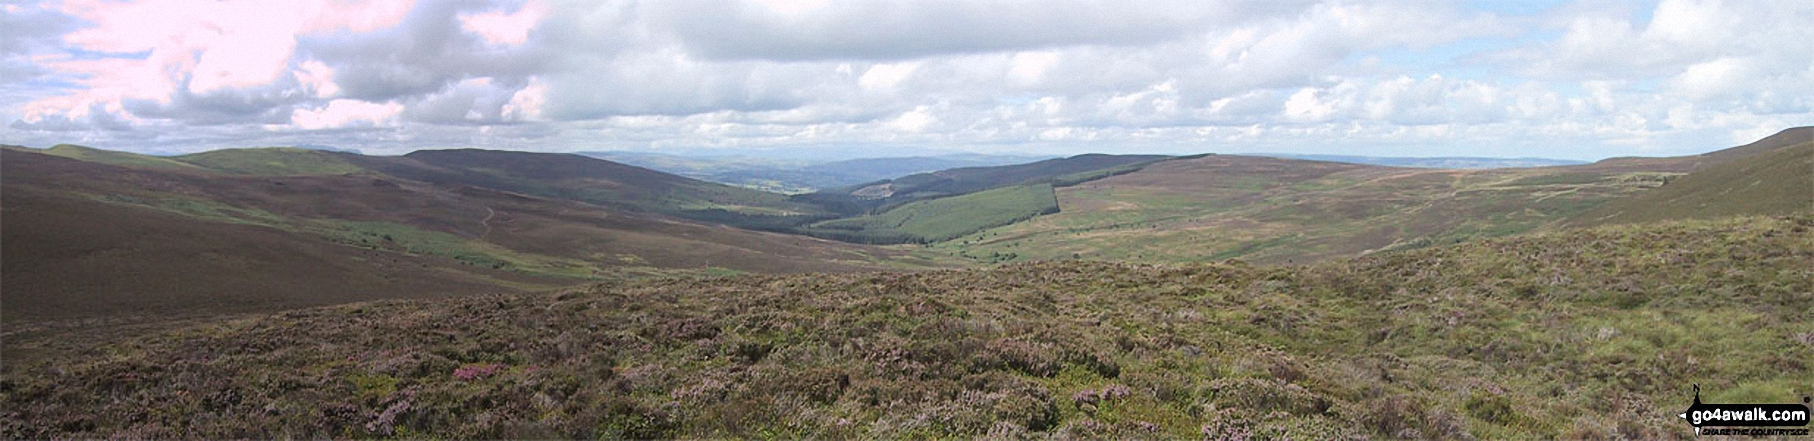 Pen Bwlch Llandrillo Top, Nant Croes-y-wernen, Pen Creigau'r, and Moel Fferna from the summit of Cerrig Coediog